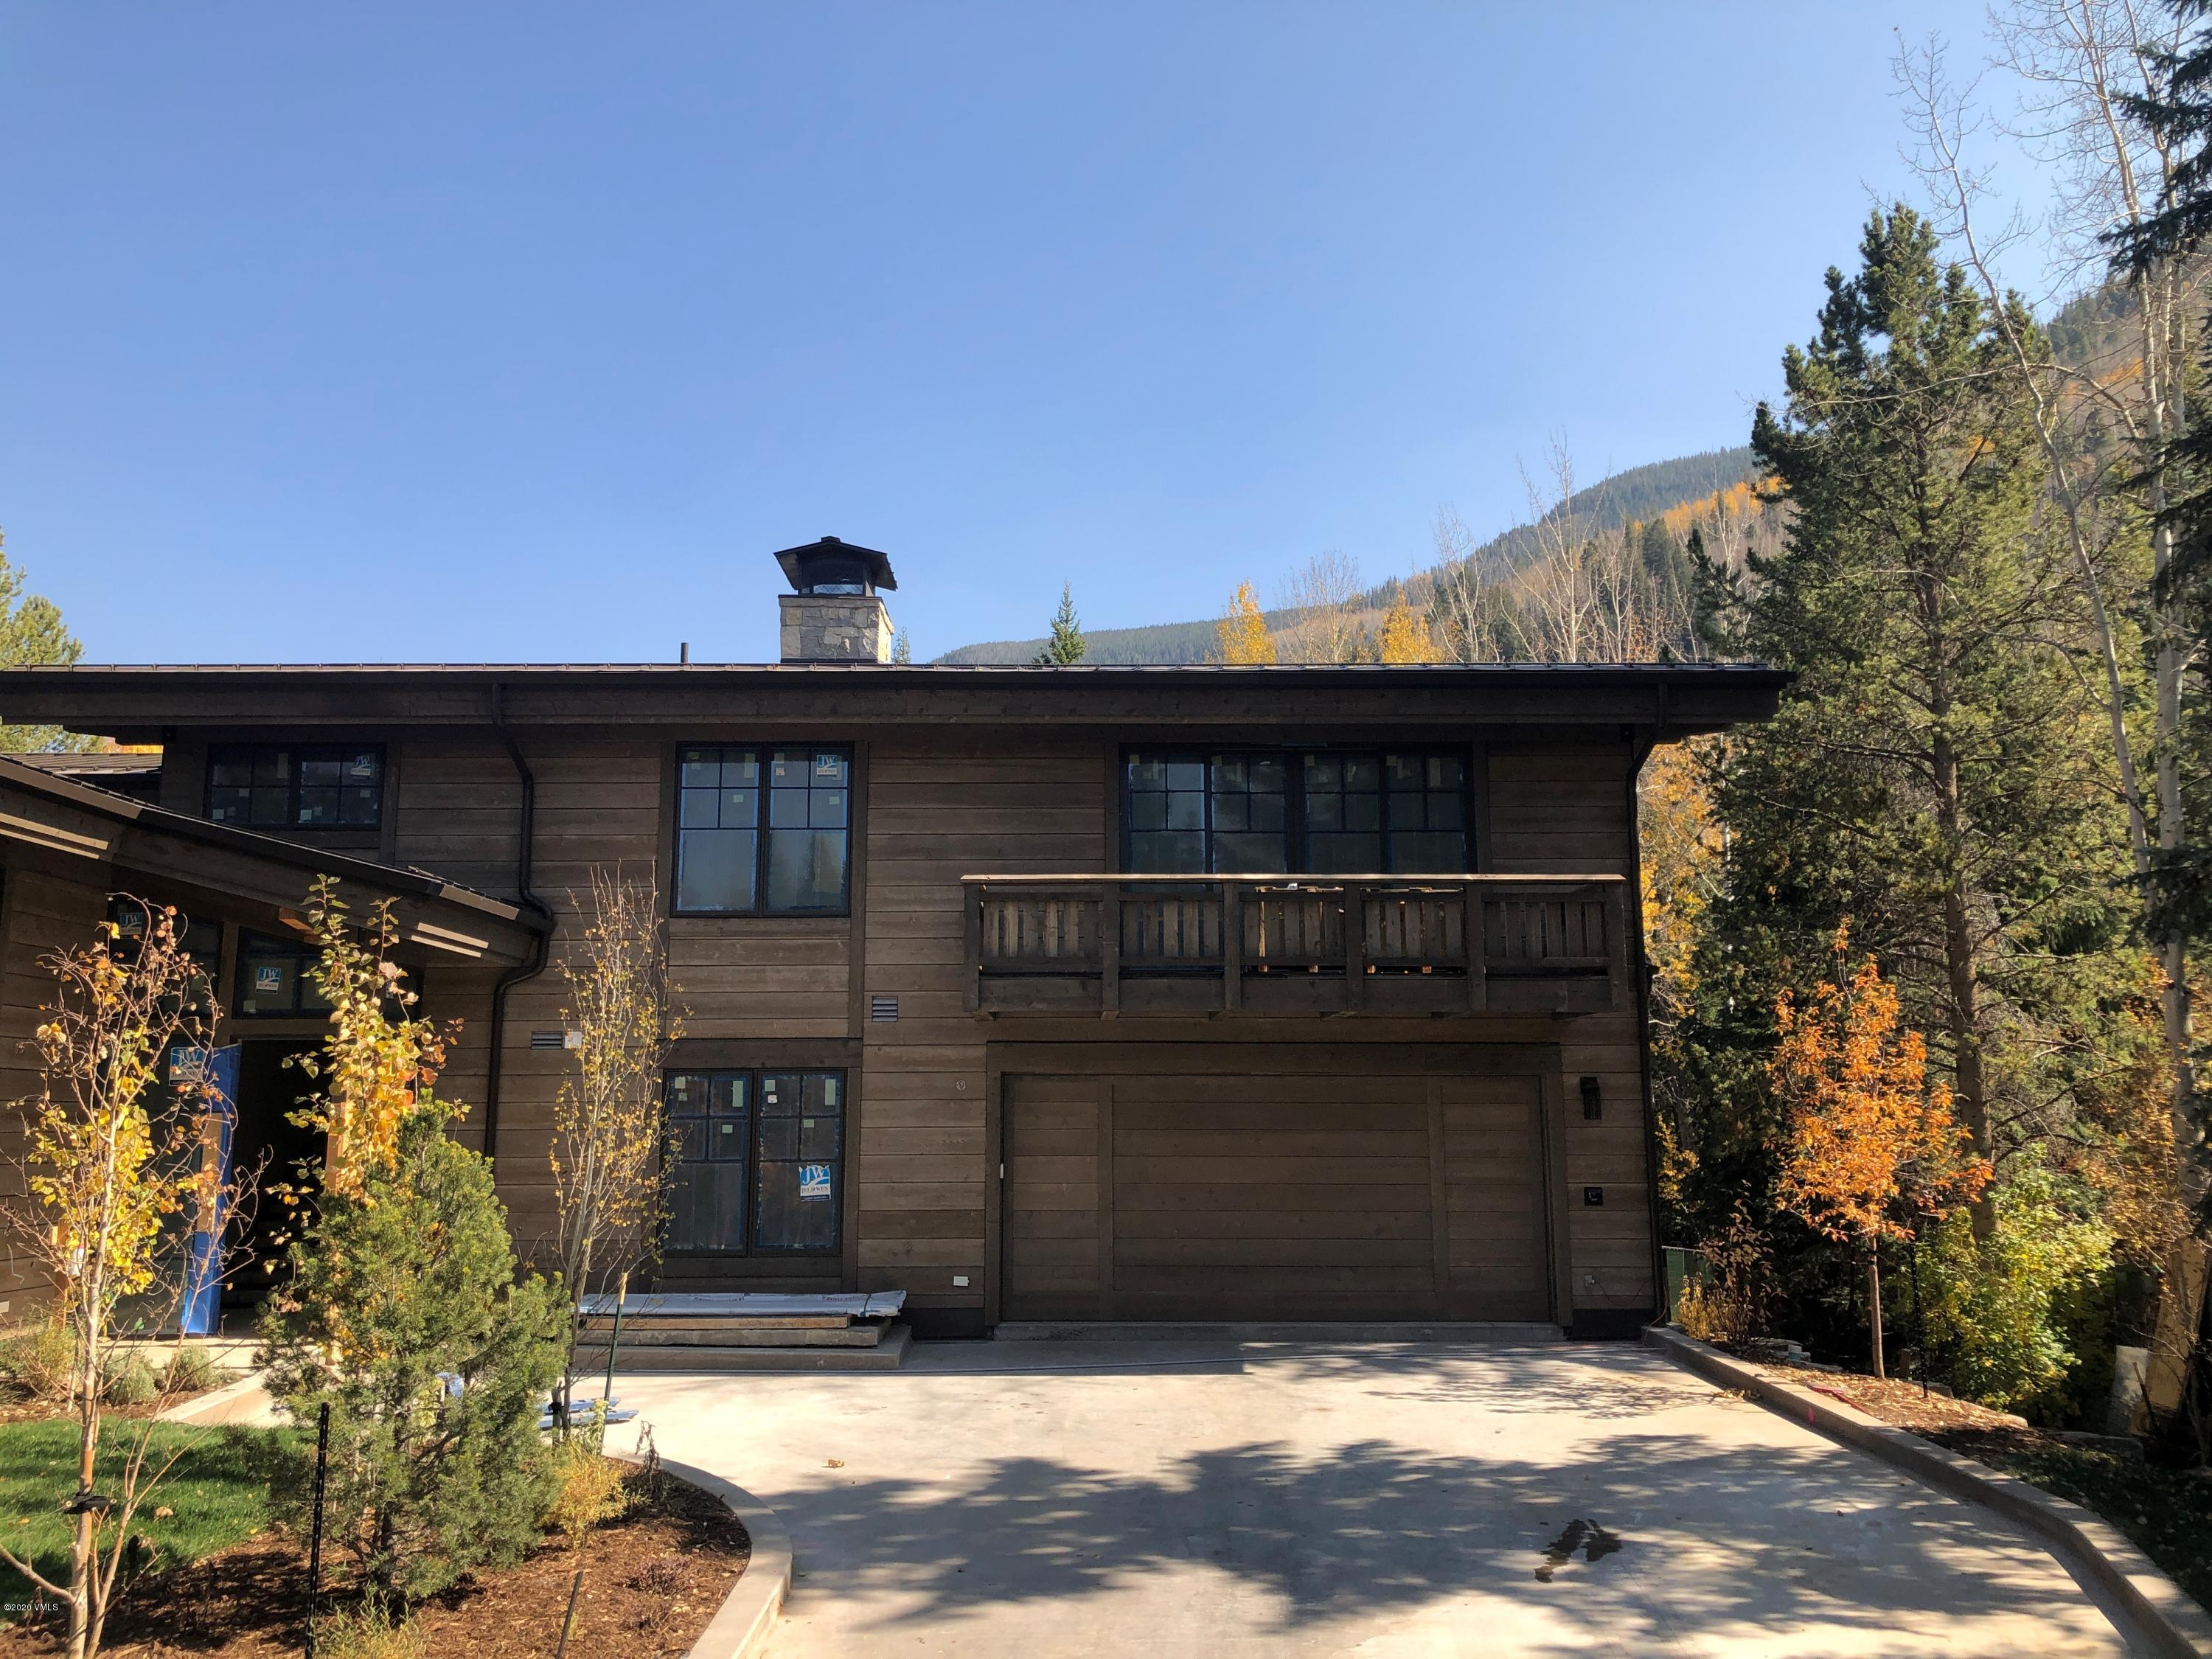 Magnificent new construction on the Vail Golf Course. This custom residence features an open floor plan, custom finishes, gourmet kitchen, radiant heat/AC  snow-melt driveway and terraces. Estimated date of completion, November 2020. Secondary side of newly constructed Duplex.